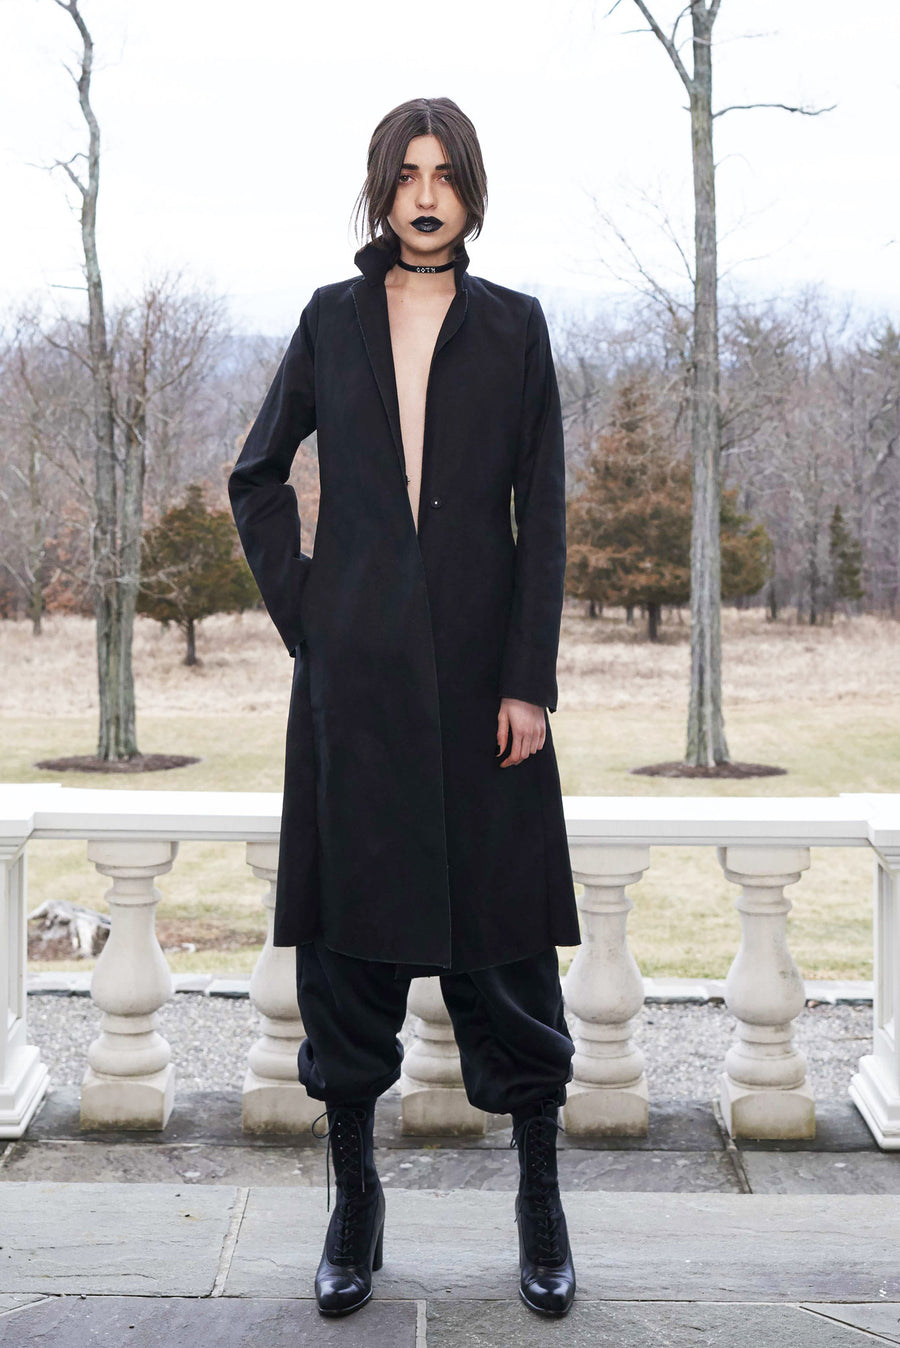 Vanessa M. IMG Model Wendy Nichol Clothing Designer Made to Order Custom Tailoring Made to Measure Handmade in NYC New York City Fashion Runway Show AW16 13 Incarnations Black Canvas Coat Structured Jacket Silk Charmeuse Ruche Ankle Pants Rayon Wool Interlining Warm Sweatpants High Waist Waisted